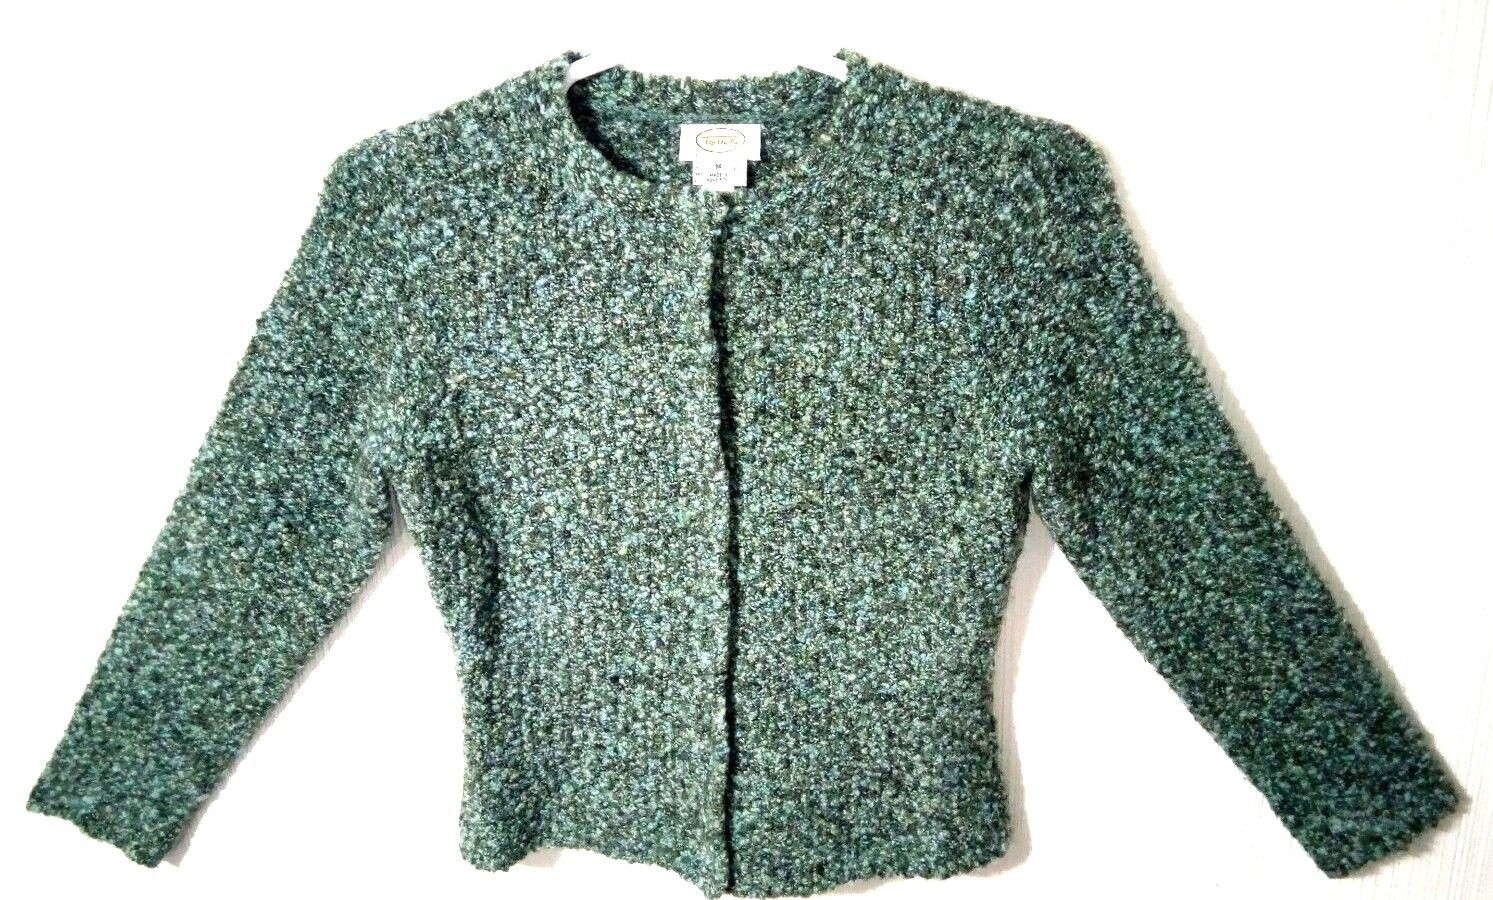 Talbots Petites Women's M Blue Green Wool Snap Buttons Sweater Cardigan image 2